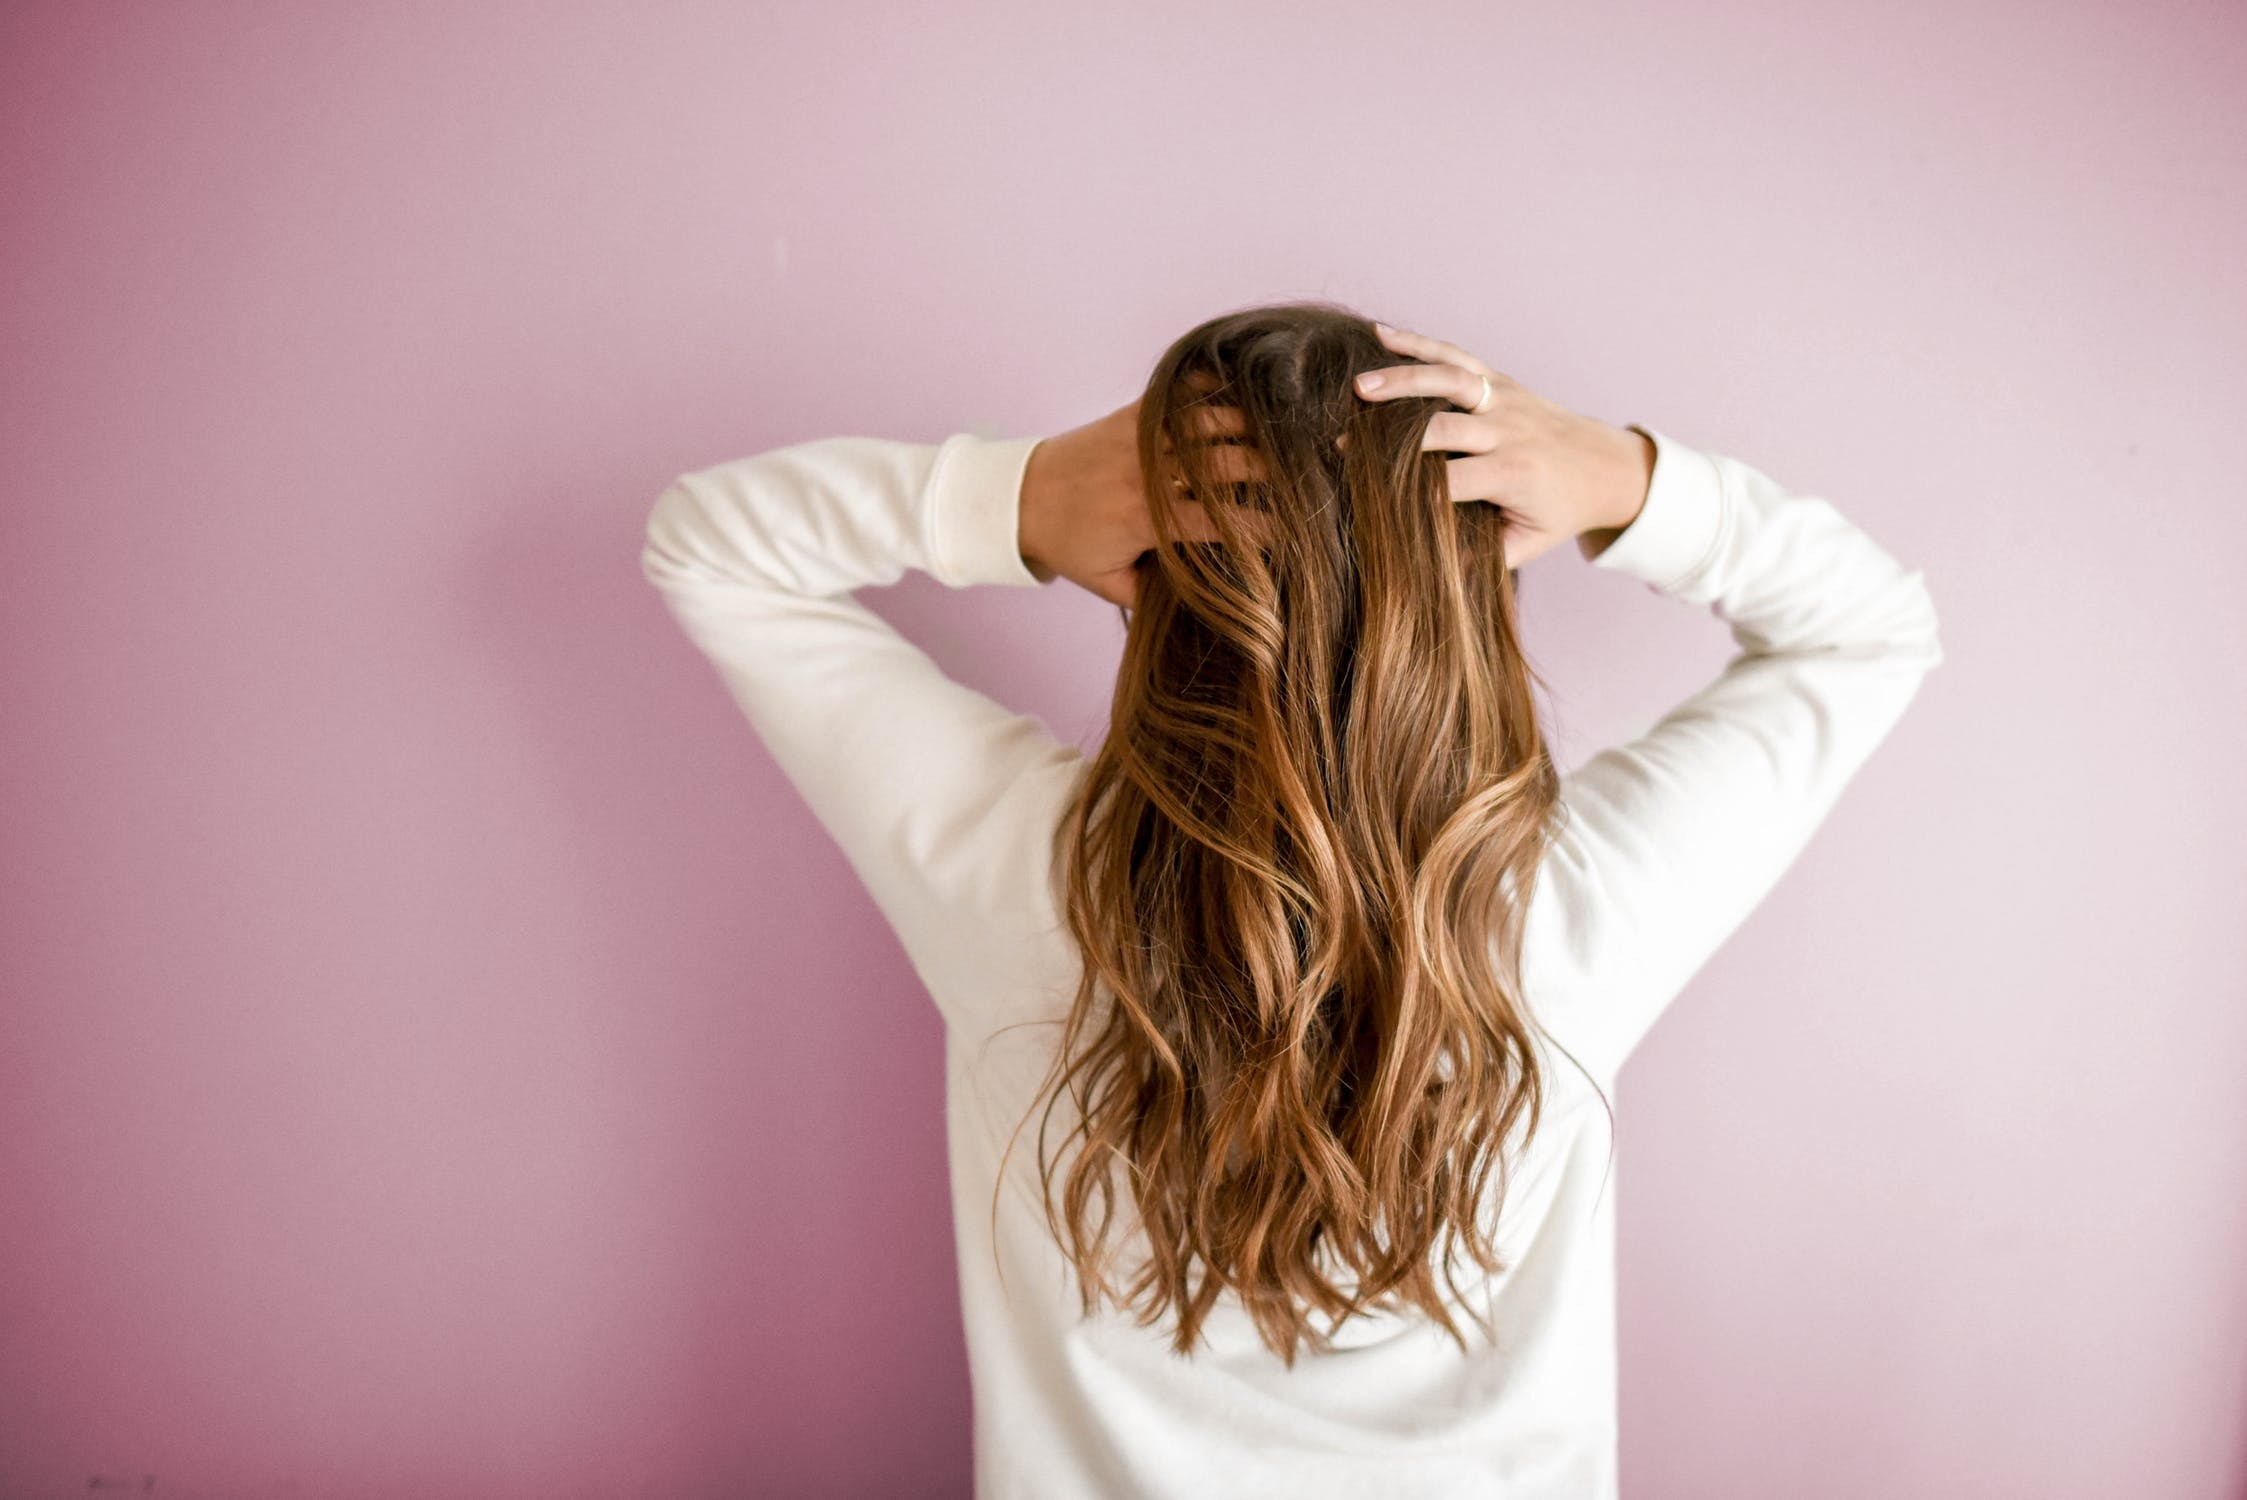 Cut Style Your Own Hair At Home Adelaide